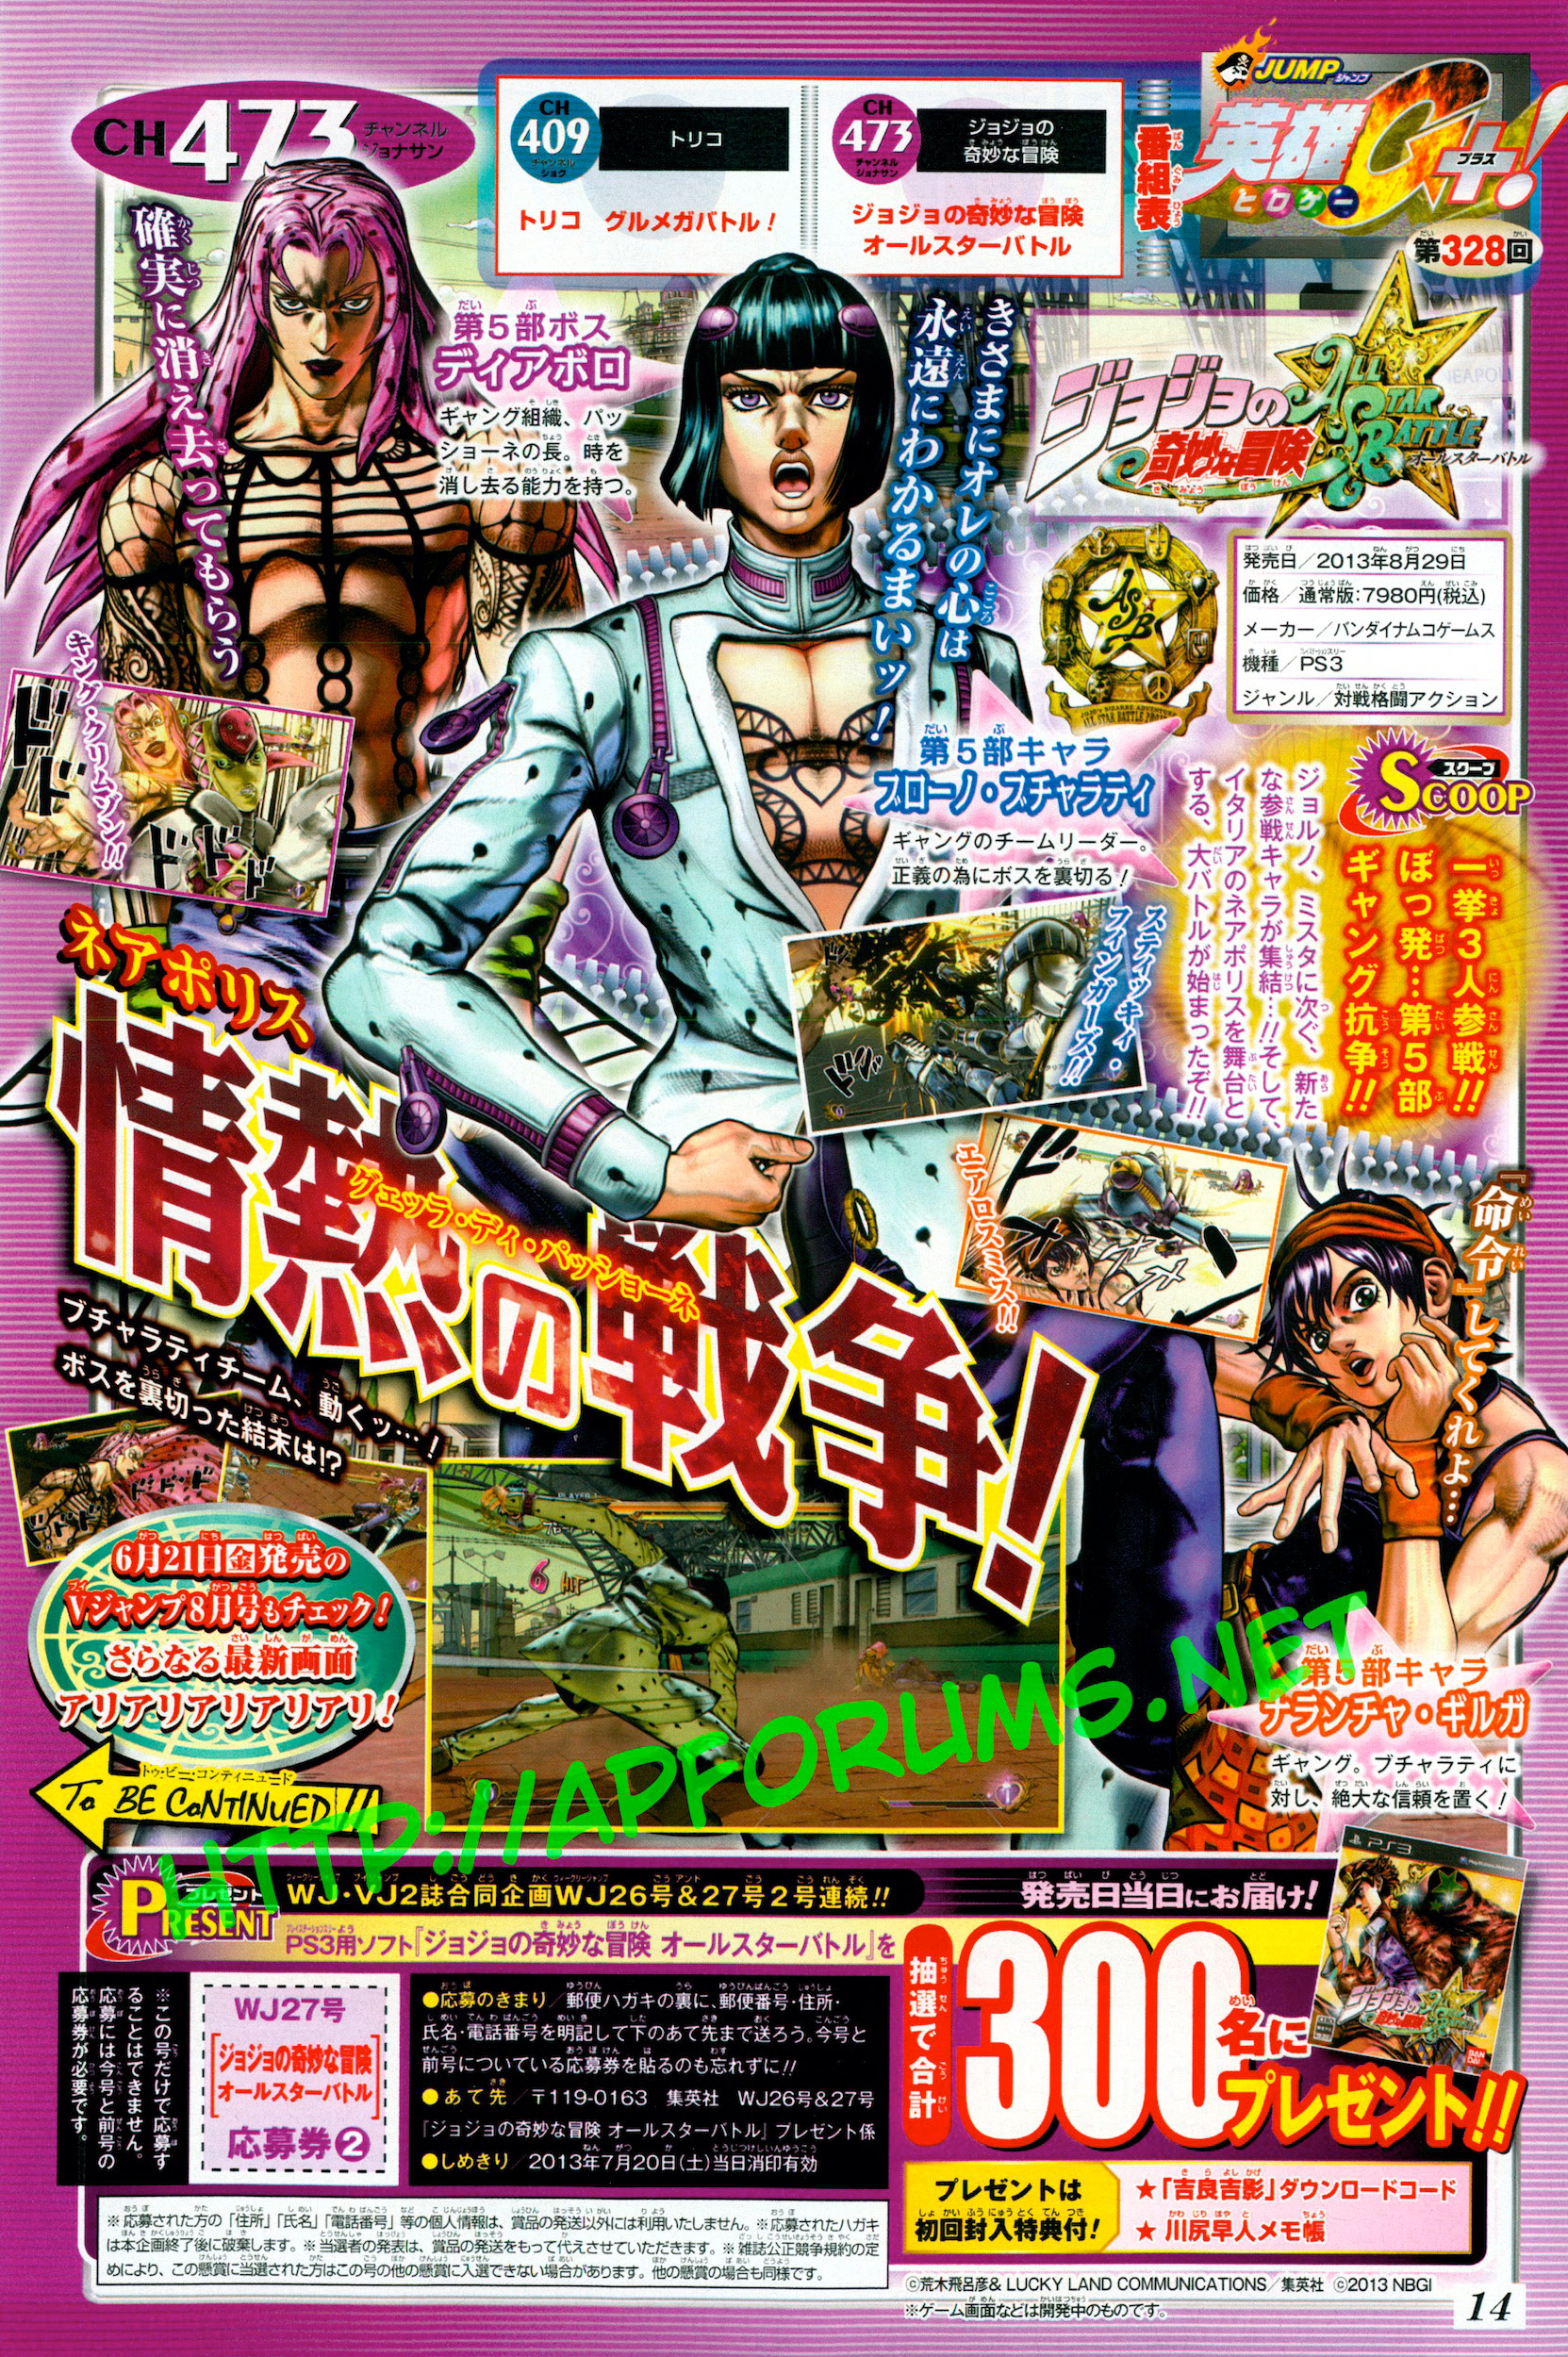 Diavolo, Bruno, And Narancia confirmed as playable in JoJo's Bizarre Adventure: All Star Battle - HD scan